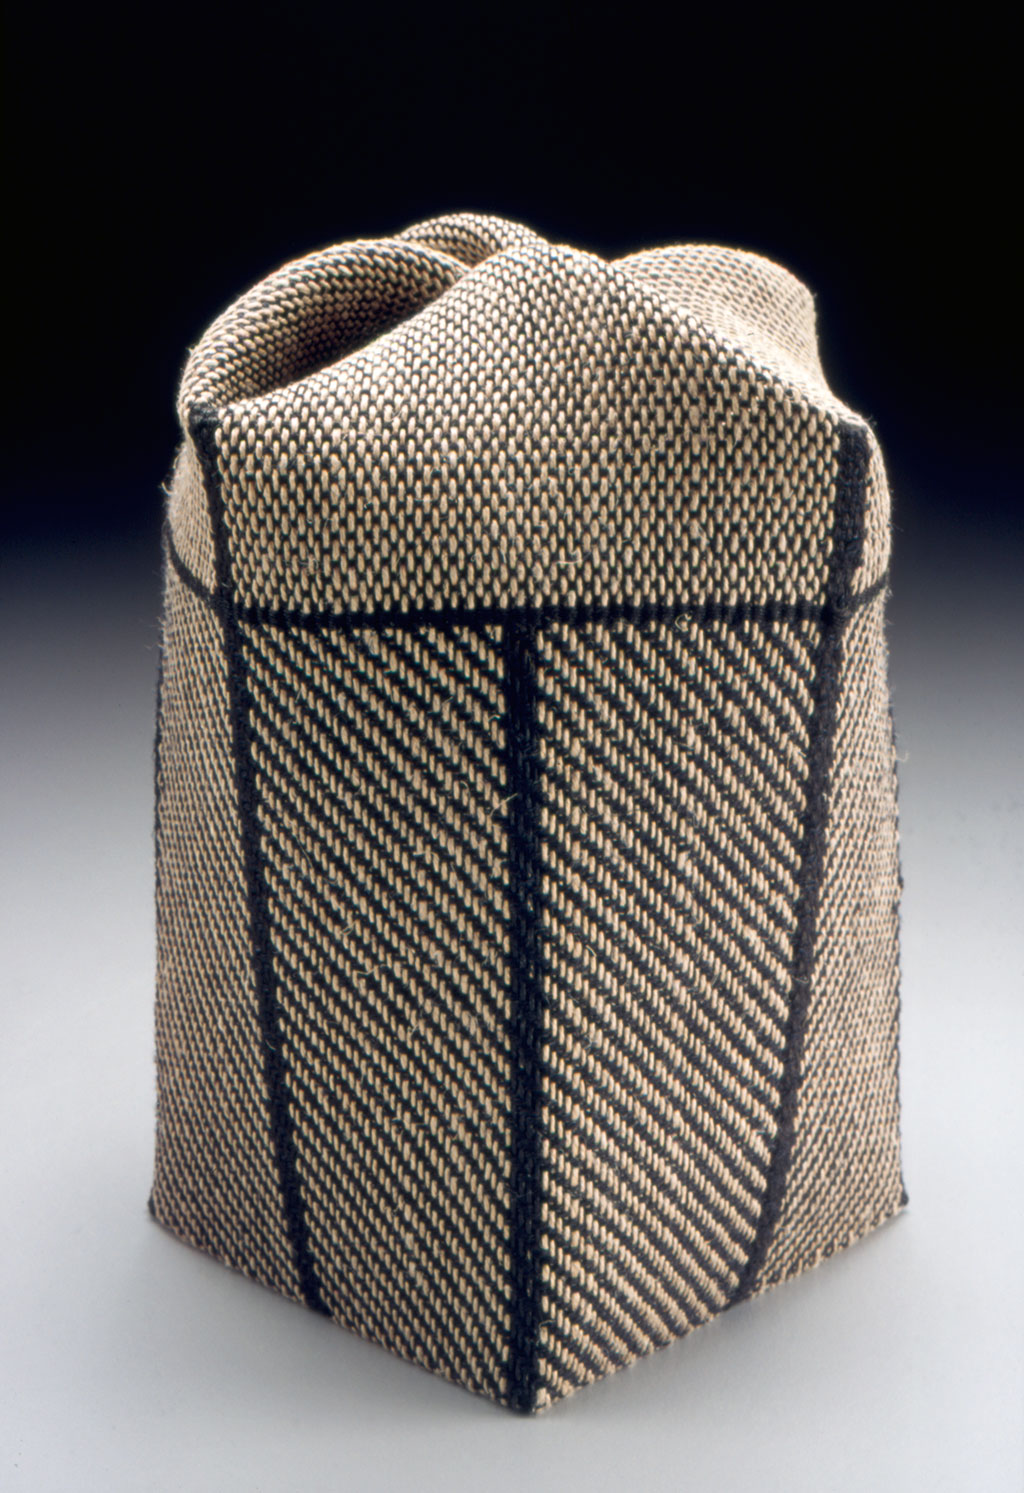 Kay Sekimachi, Takarabako, Courtesy of Forrest L. Merrill Collection, Craft in America